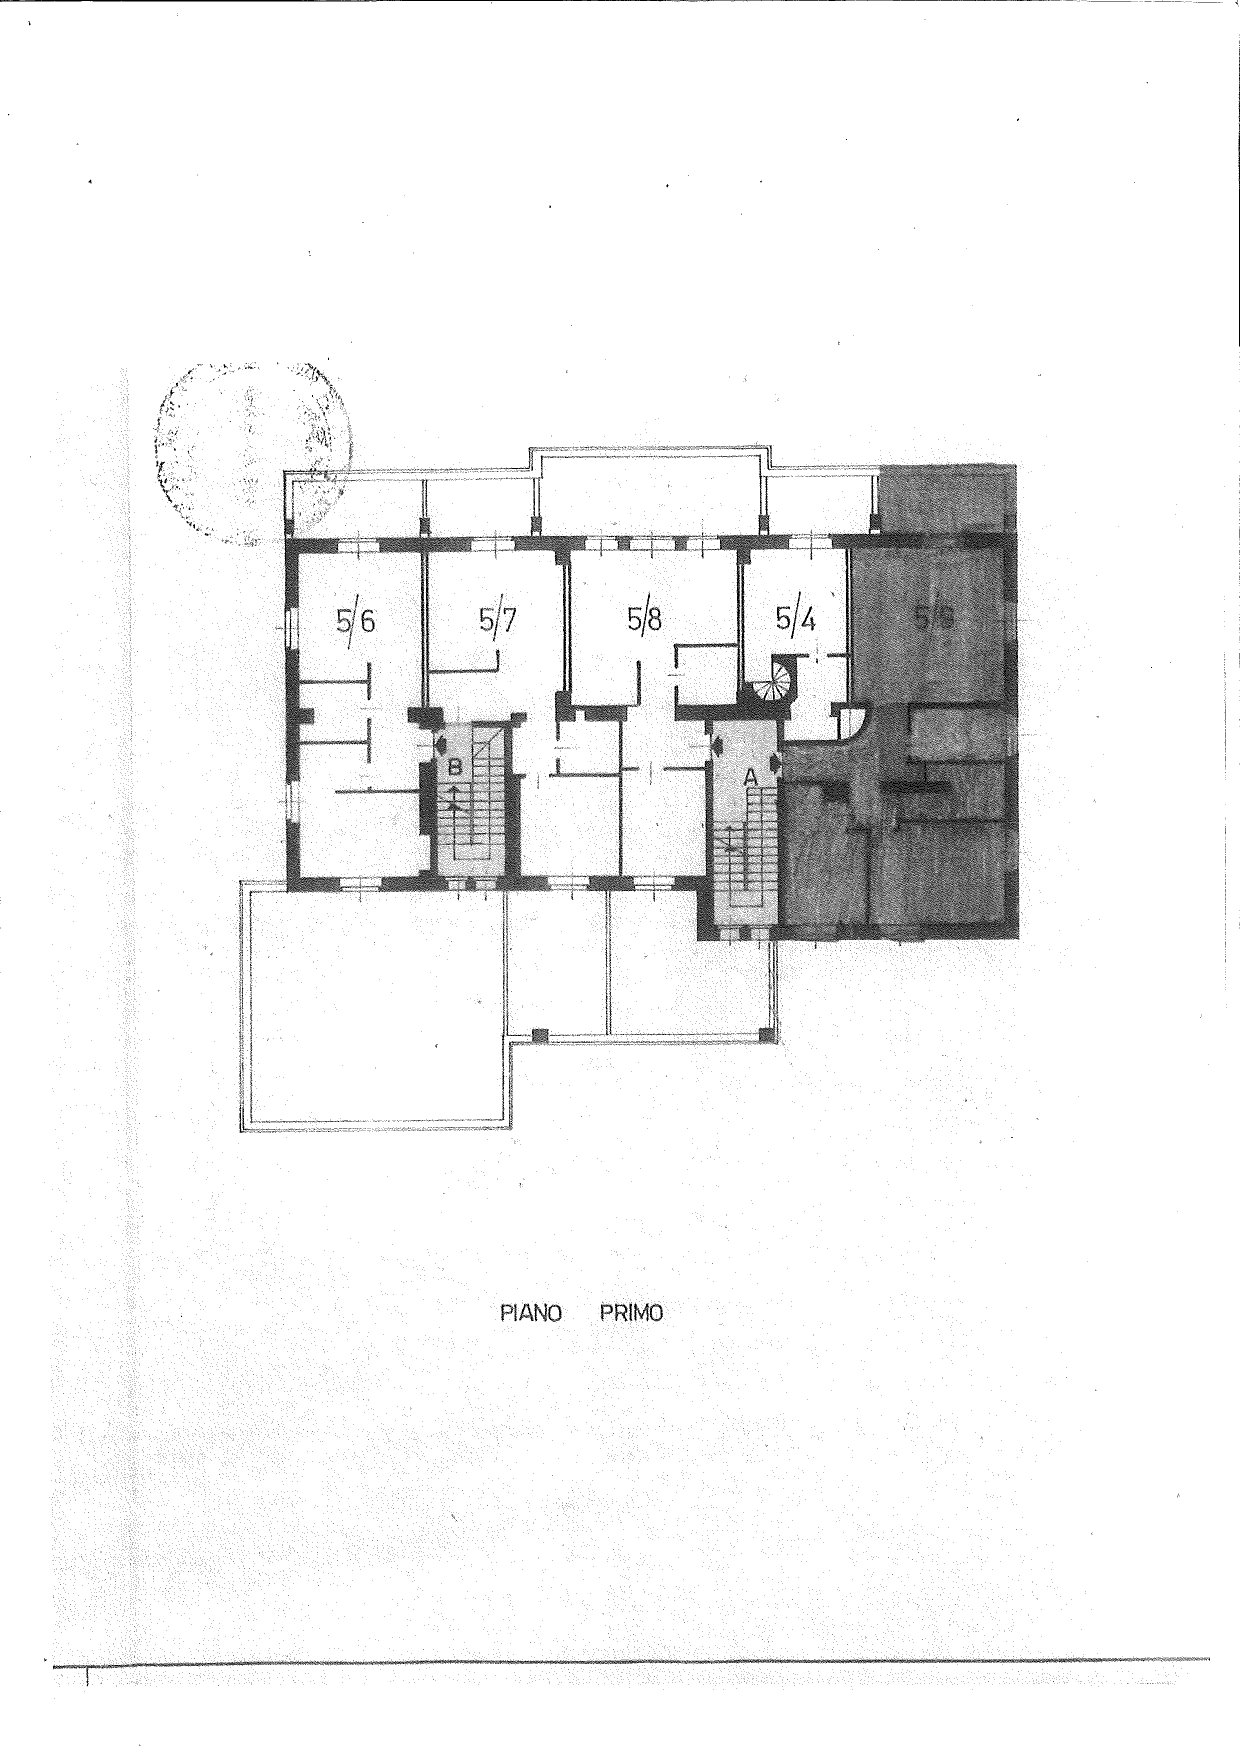 Apartment for sale in a residence in Stresa - floor plan